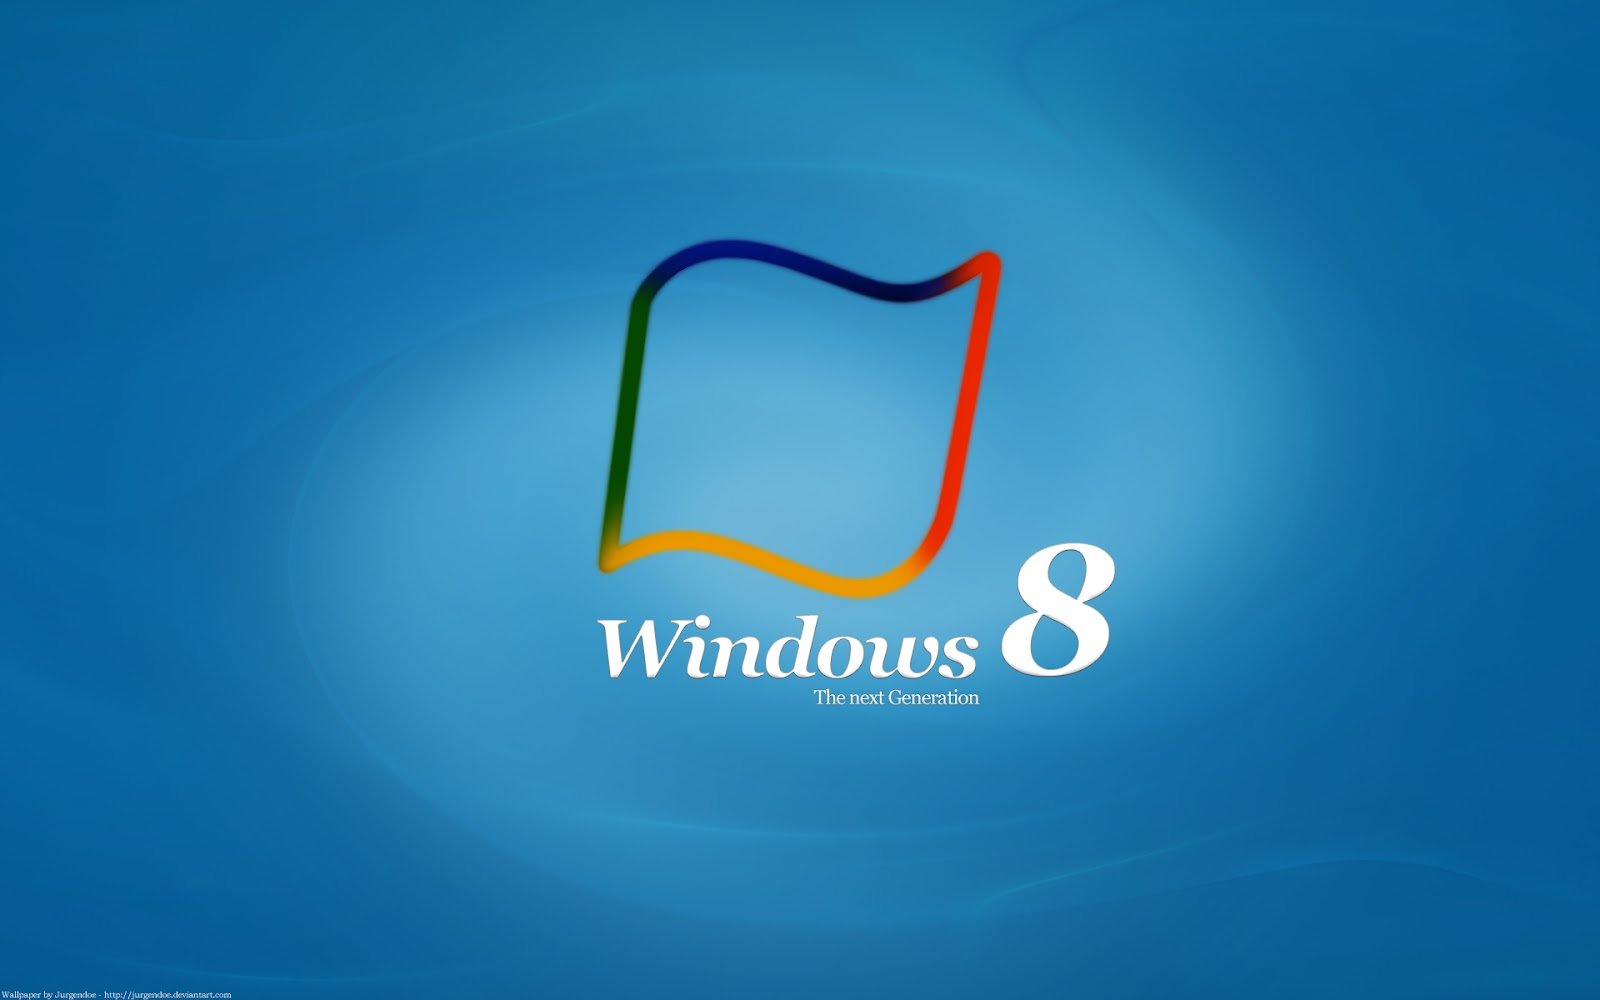 all wallpapers | wallpapers 2012: windows 8 hd wallpaper | windows 8